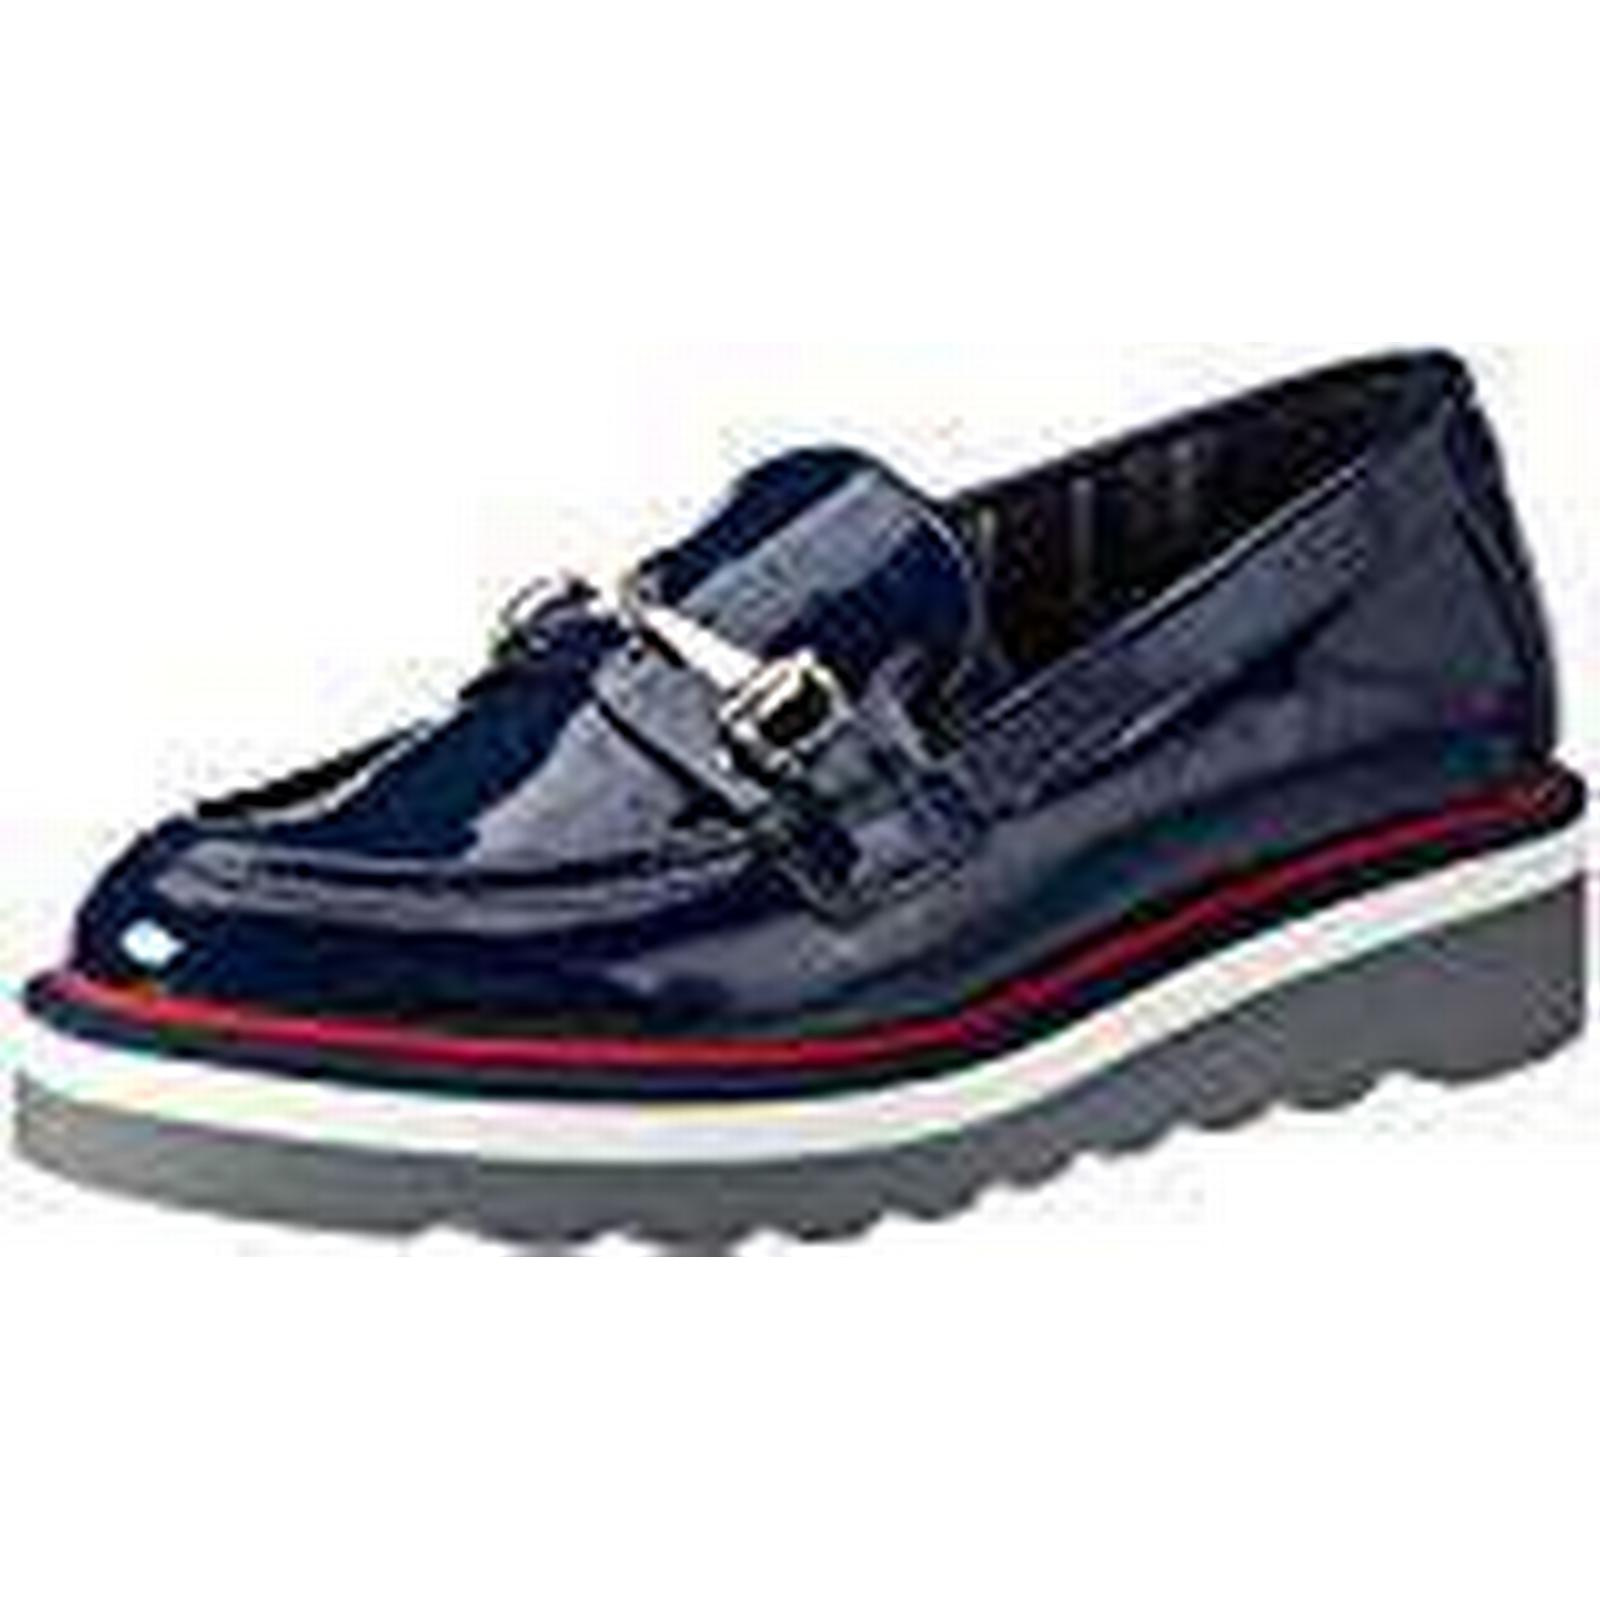 Tommy Hilfiger P1285AULINA 3P, Navy), Women's Loafers, Blue (Tommy Navy), 3P, 7 UK (41 EU) 1160d4